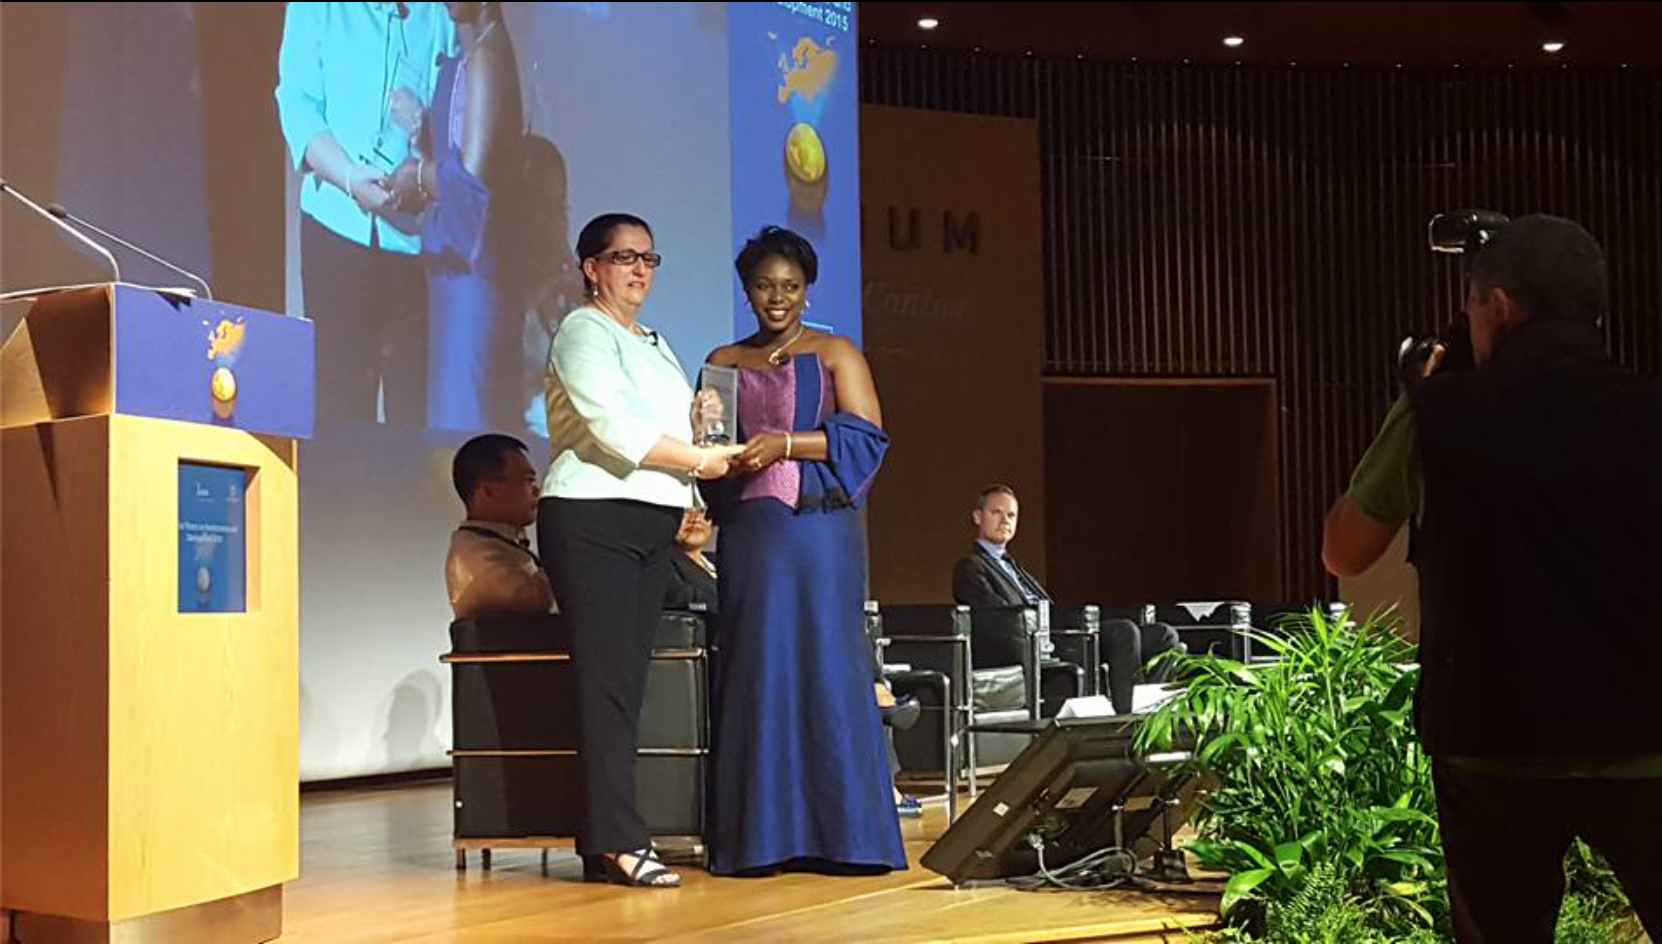 Mame Khary Diene , founder and CEO of the  Bioessence Laboratories  receivingher award in the category of diaspora entrepreneurship at the 2015 UN IFAD Awards